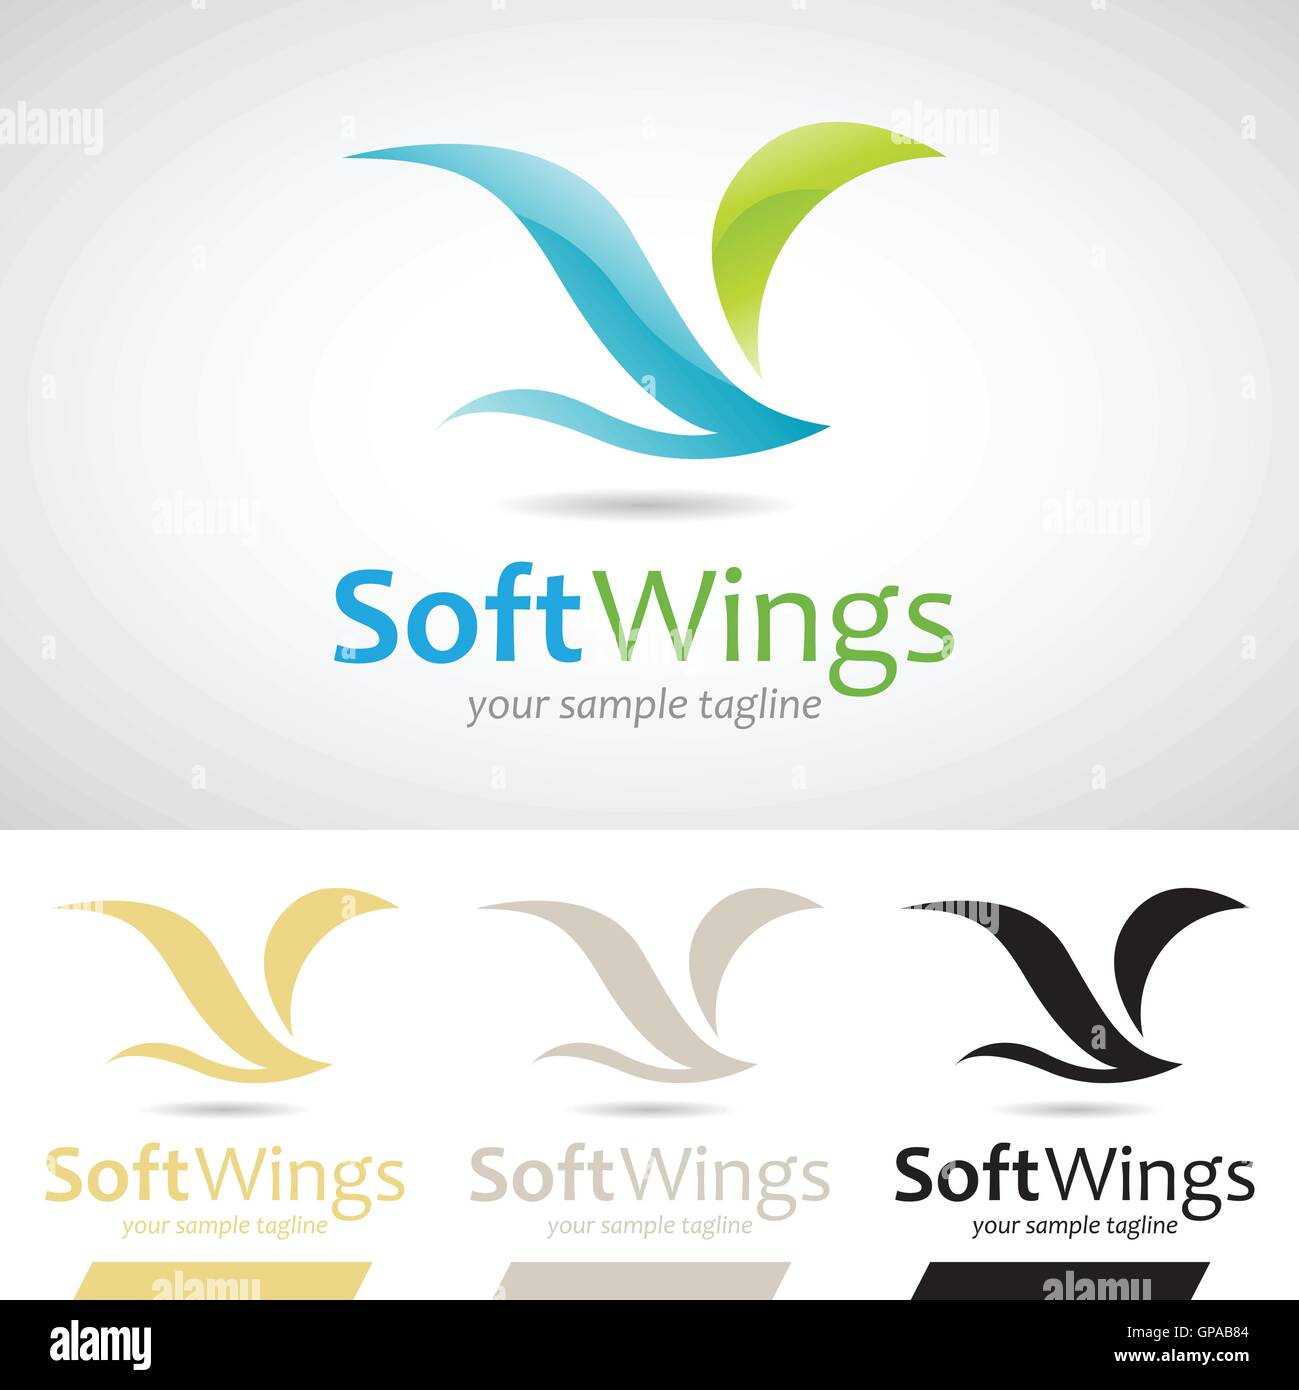 Blue and Green Soft Wings Bird Logo Icon Vector Illustration Stock Vector